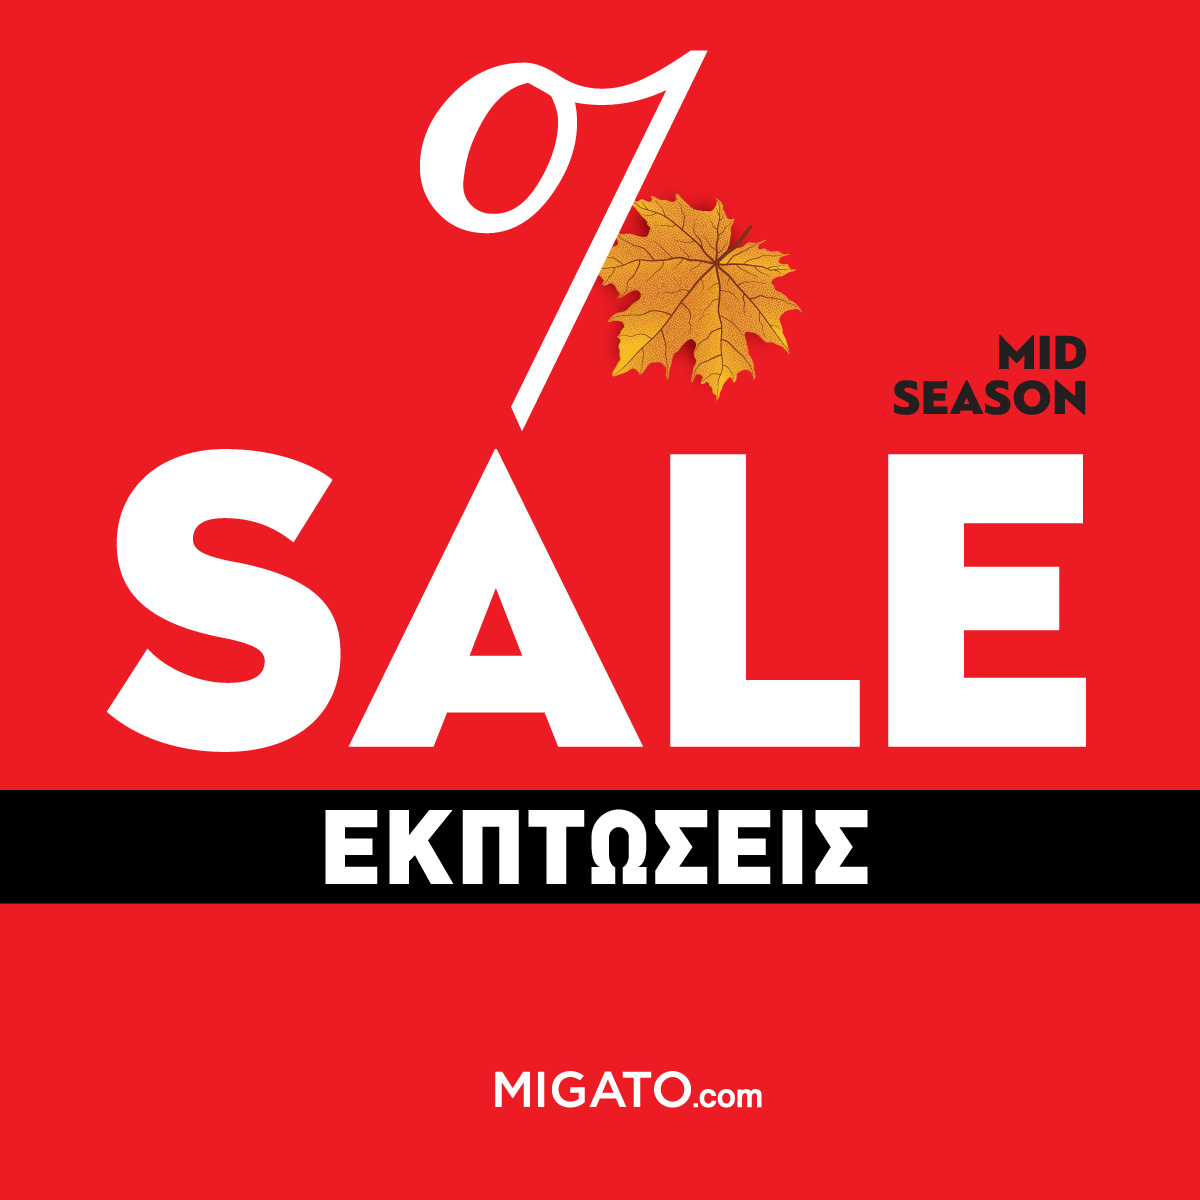 6f42c16e47 Do not miss the Mid Season Sale at MIGATO with sales up to -30% in the New  Collection! Get your favorite designs before they are out of stock!